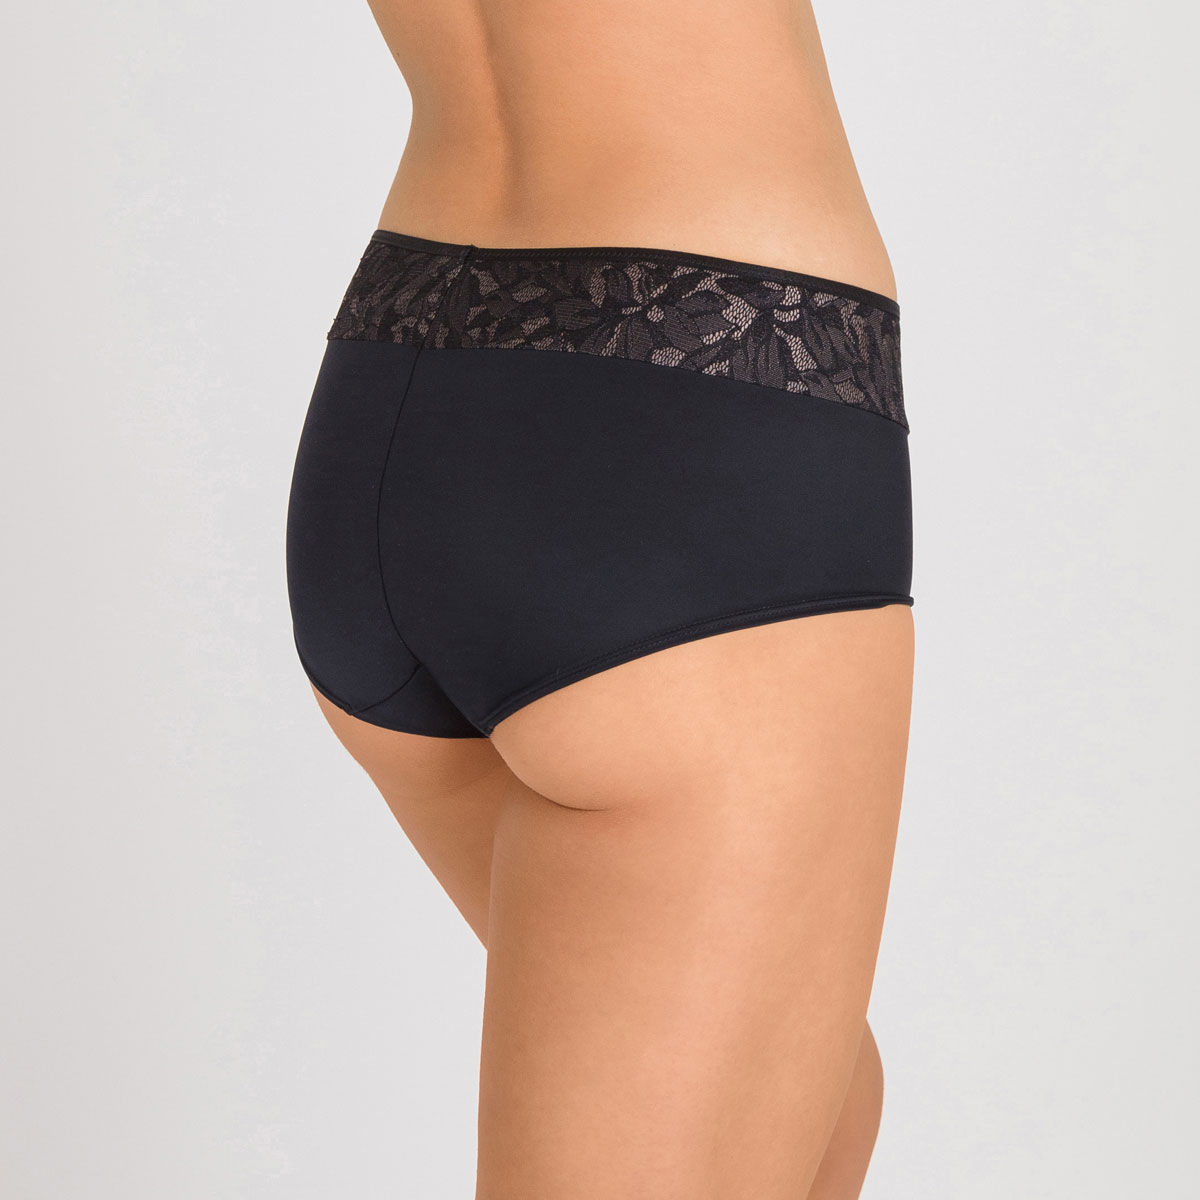 Shorty nero e grigio - Ideal Beauty Lace, , PLAYTEX